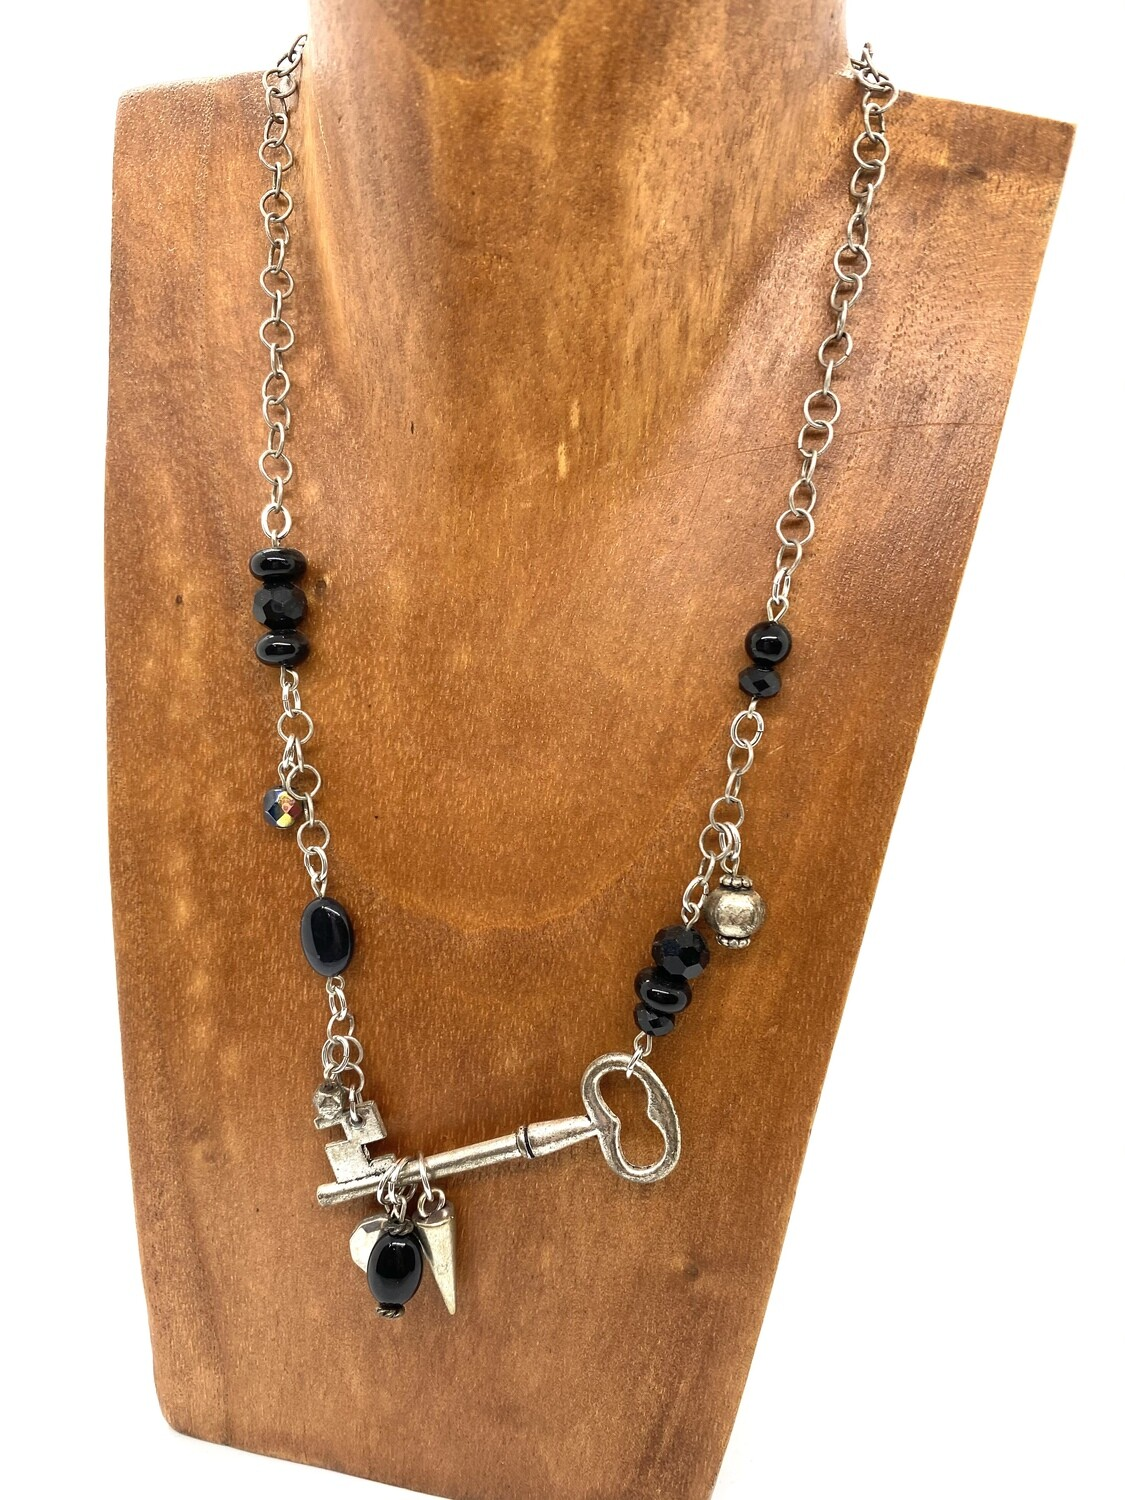 6556 Steampunk Black Key Necklace